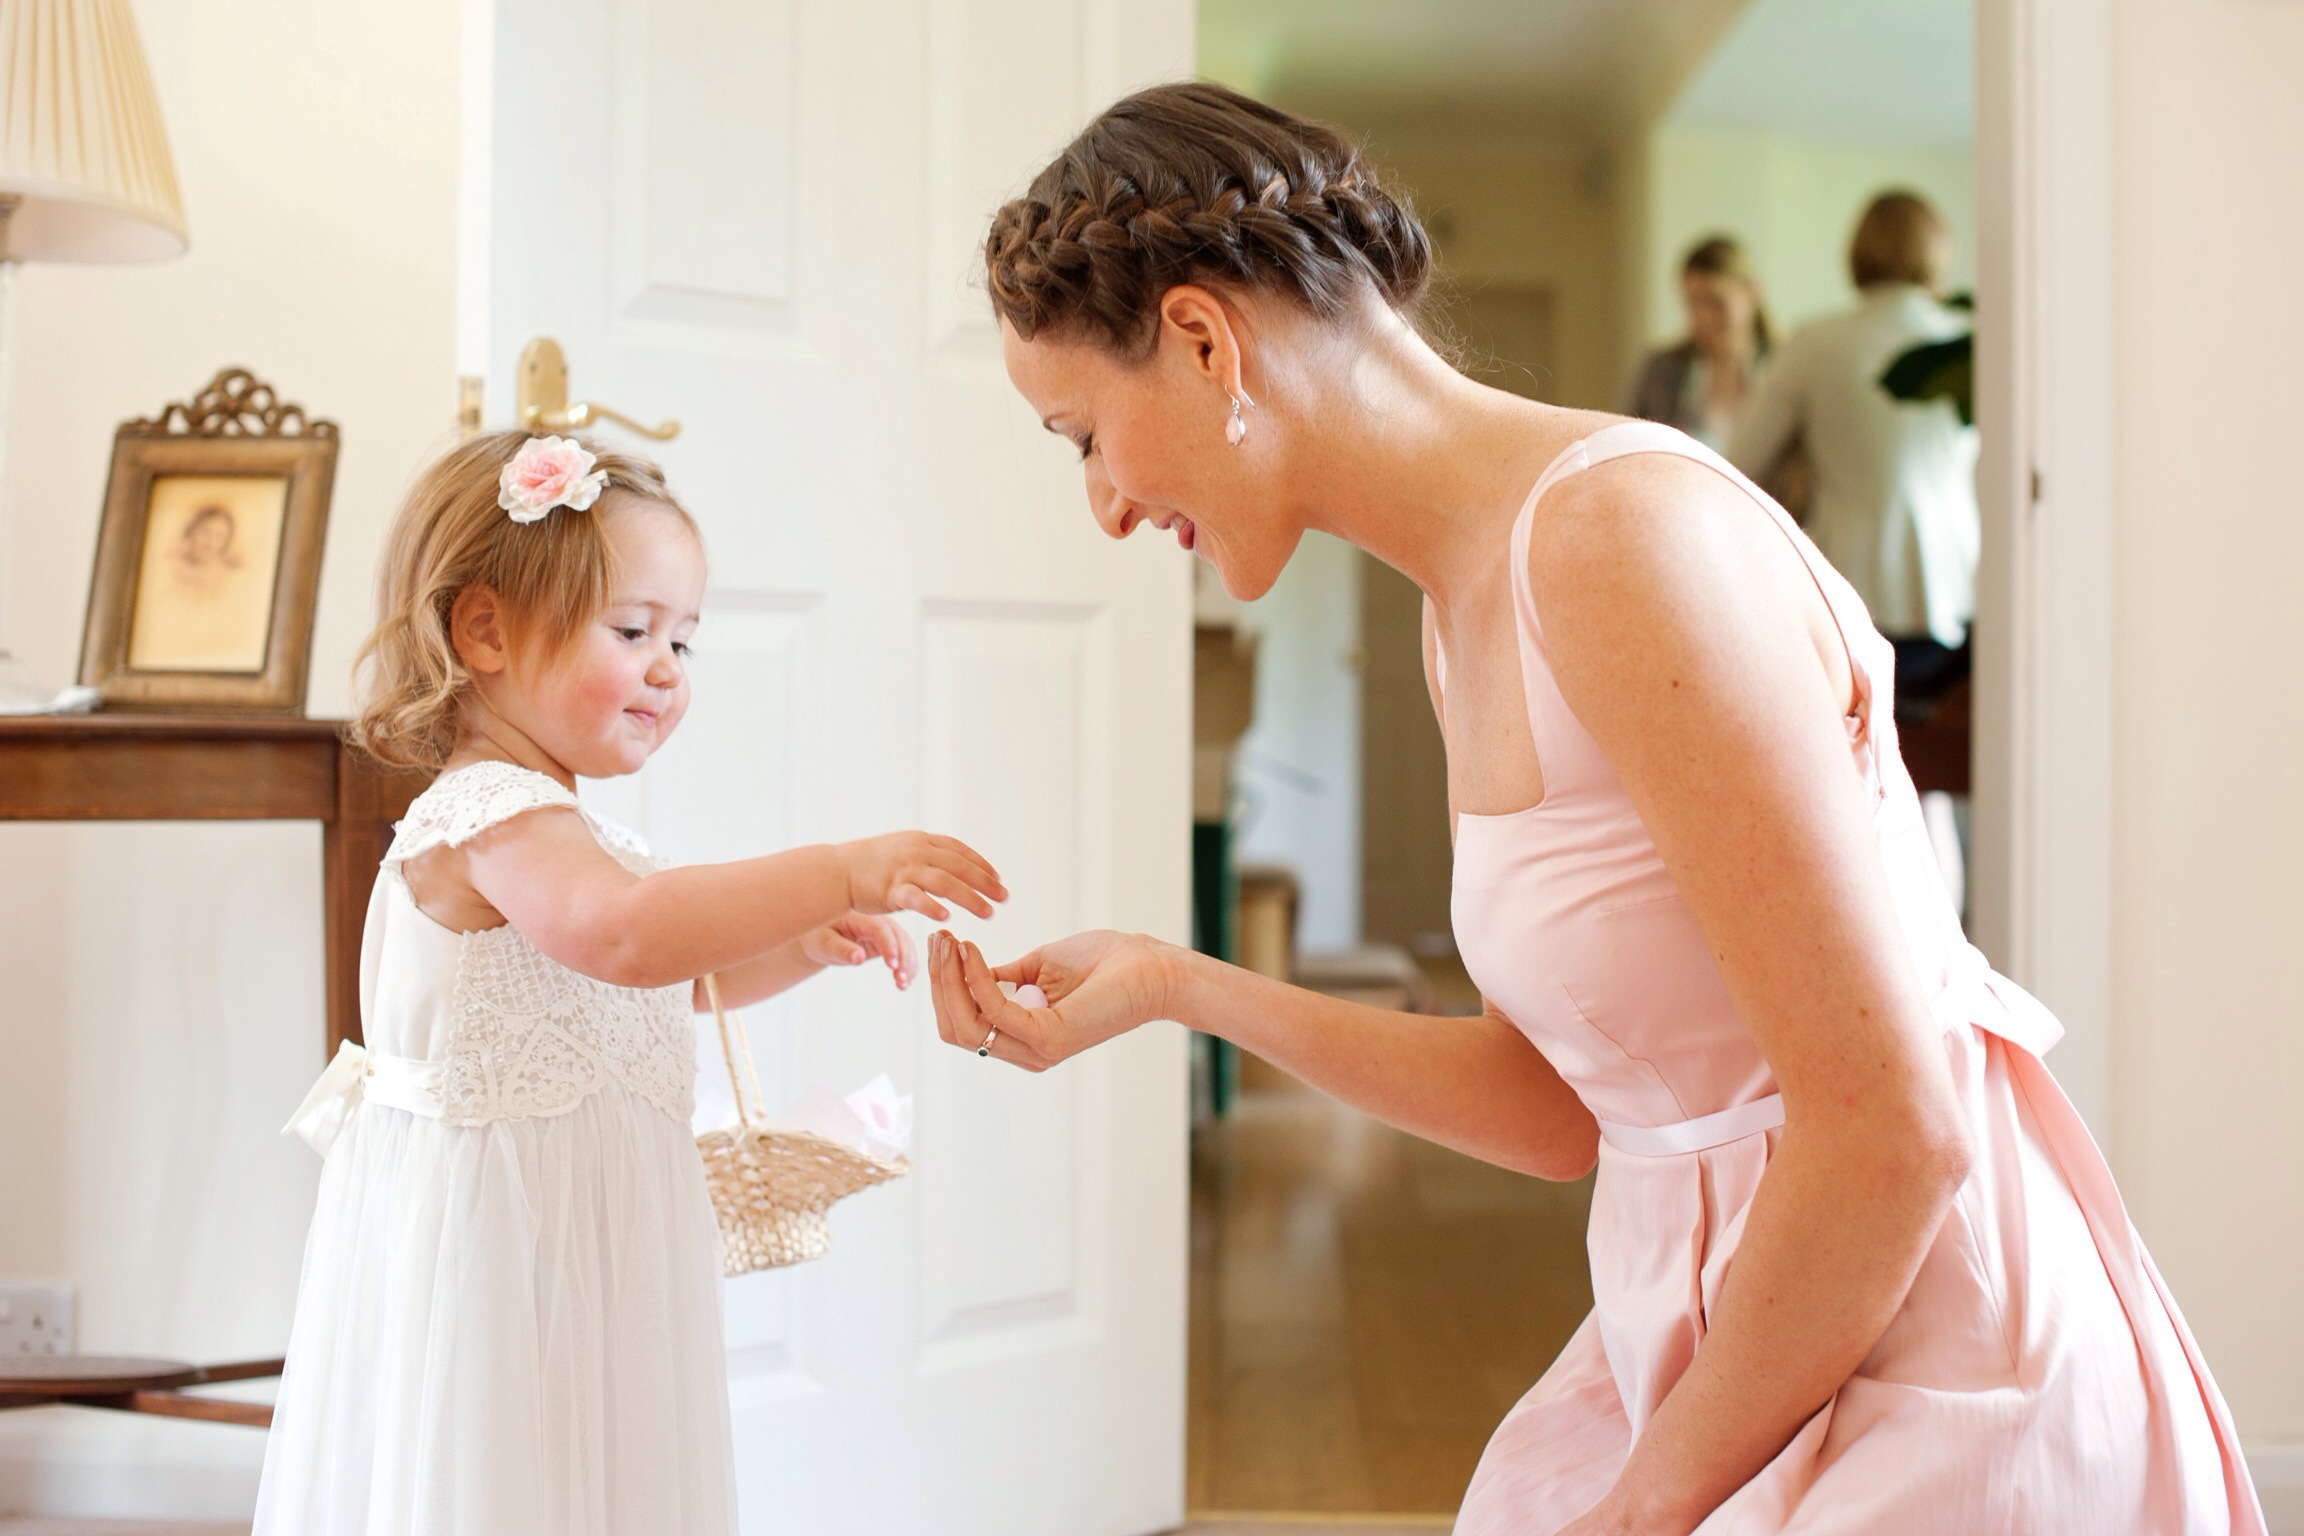 Such a tender moment, cute flower girls showing the bridesmaid her petals..These moments should be remembered forver. Imagine how this little cutie must feel right now? Like a real life princess!